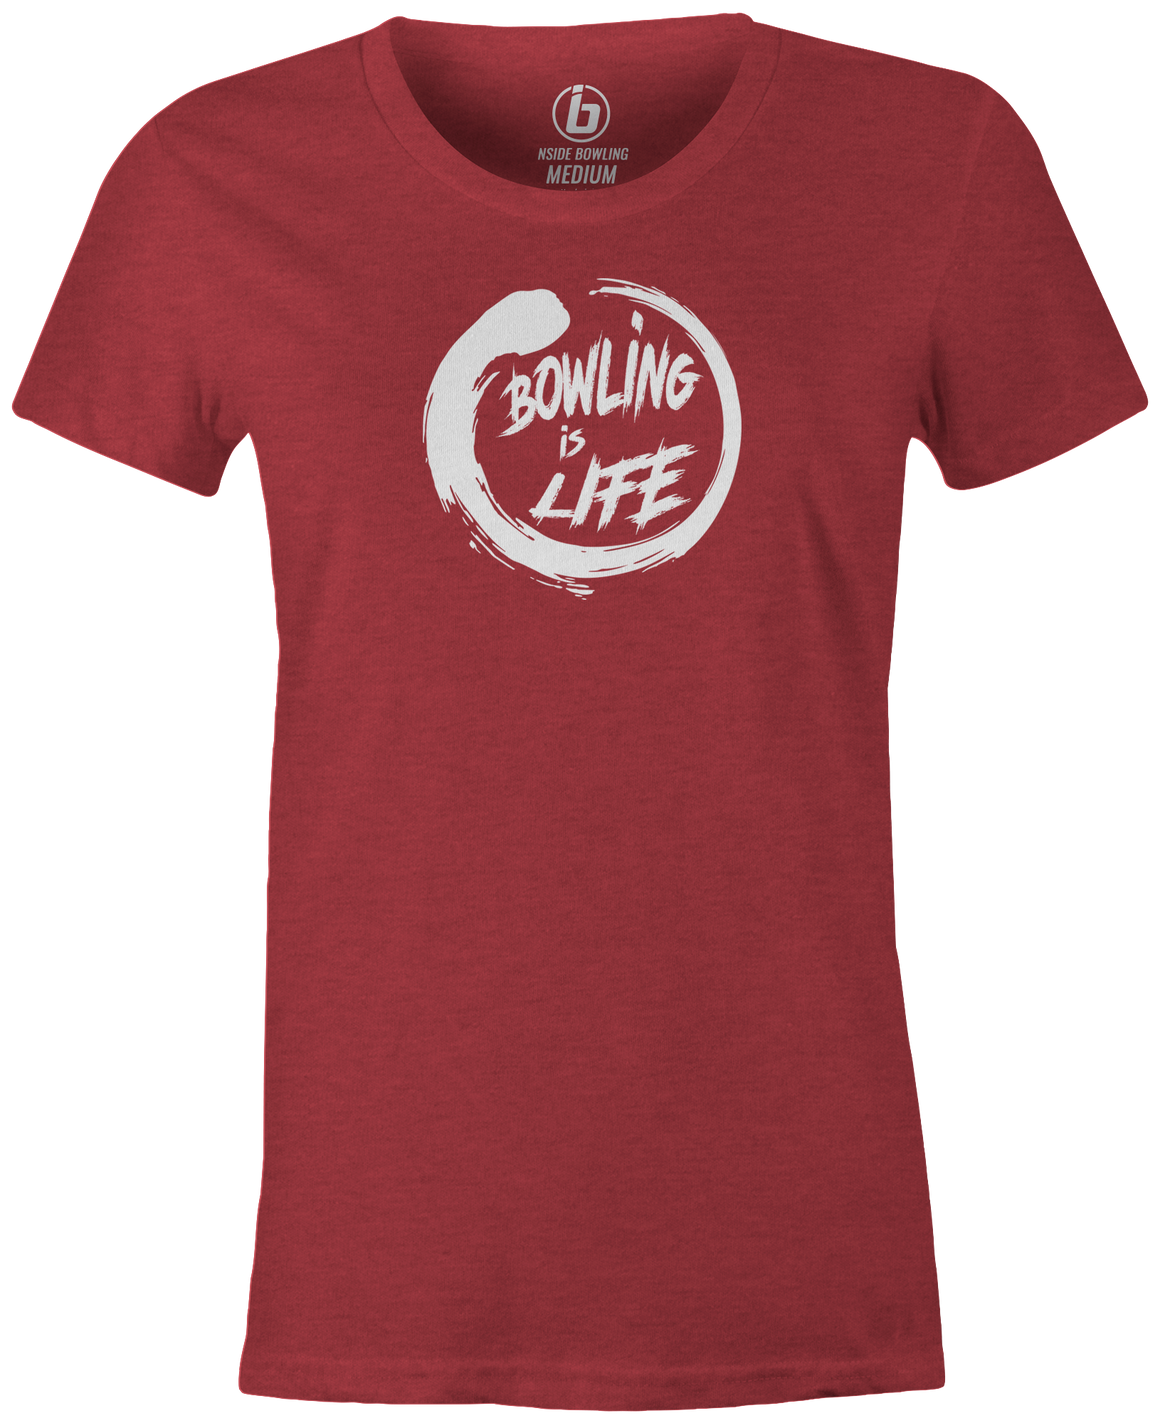 Bowling is Life Women's